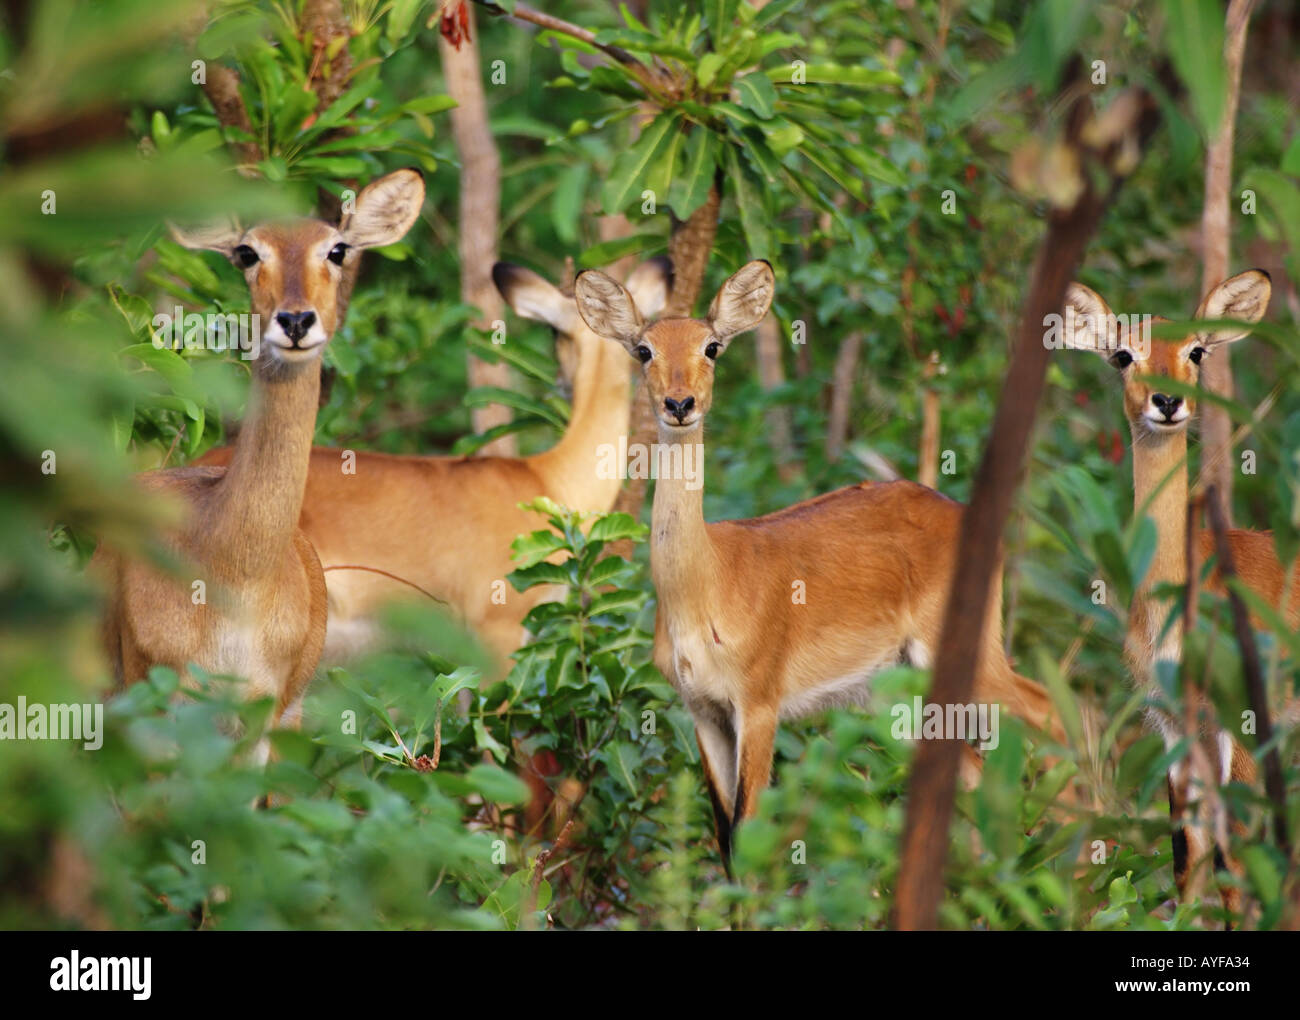 Herd of kob hinds at dusk in Mole National Park Northern Ghana - Stock Image